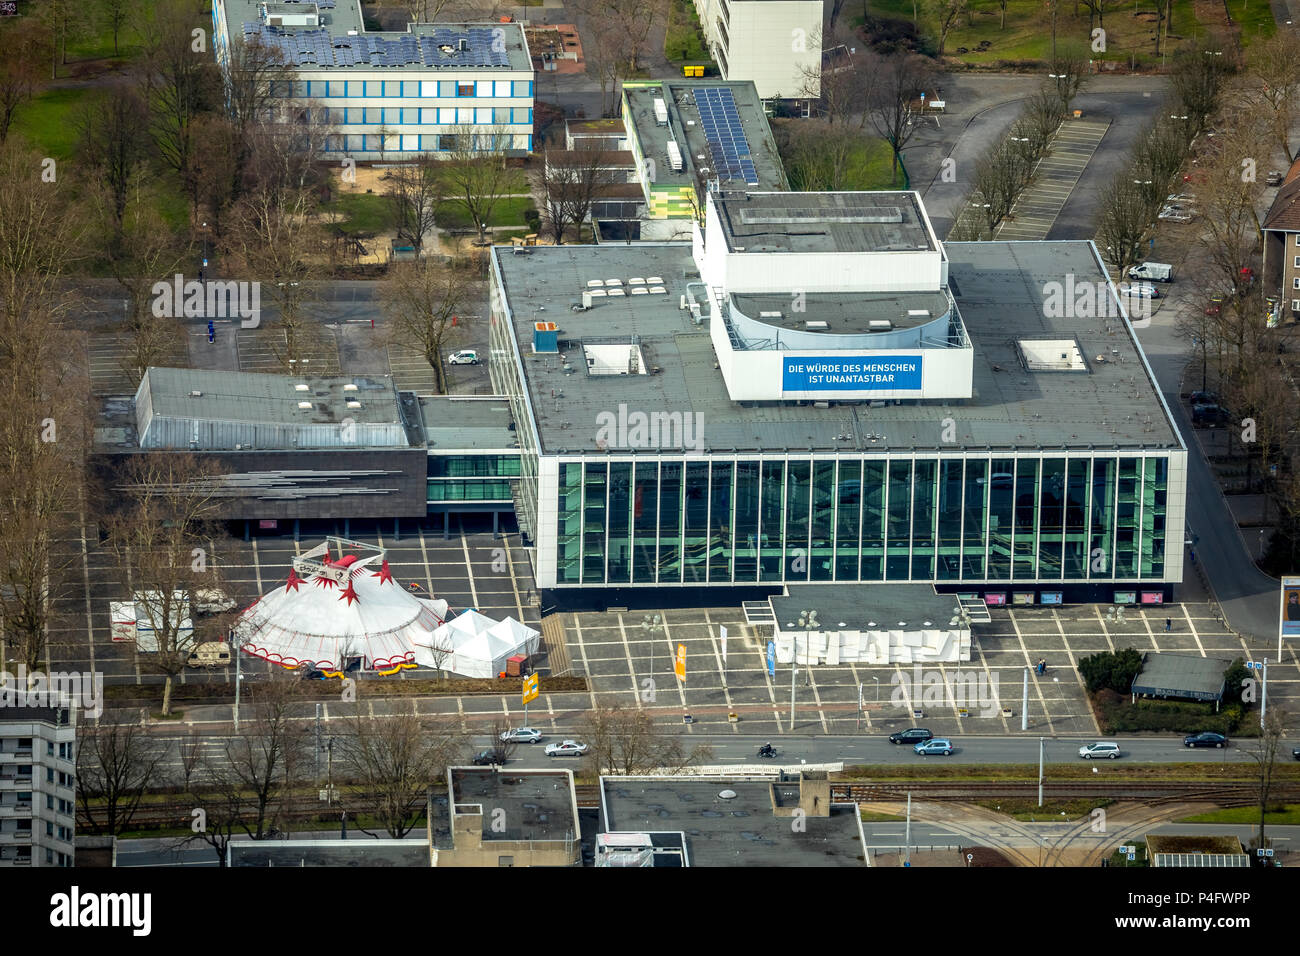 Music theater in the district of Gelsenkirchen with a tent on the Willi-Müller-Platz in Gelsenkirchen in NRW. Gelsenkirchen, Ruhr district, North Rhin - Stock Image